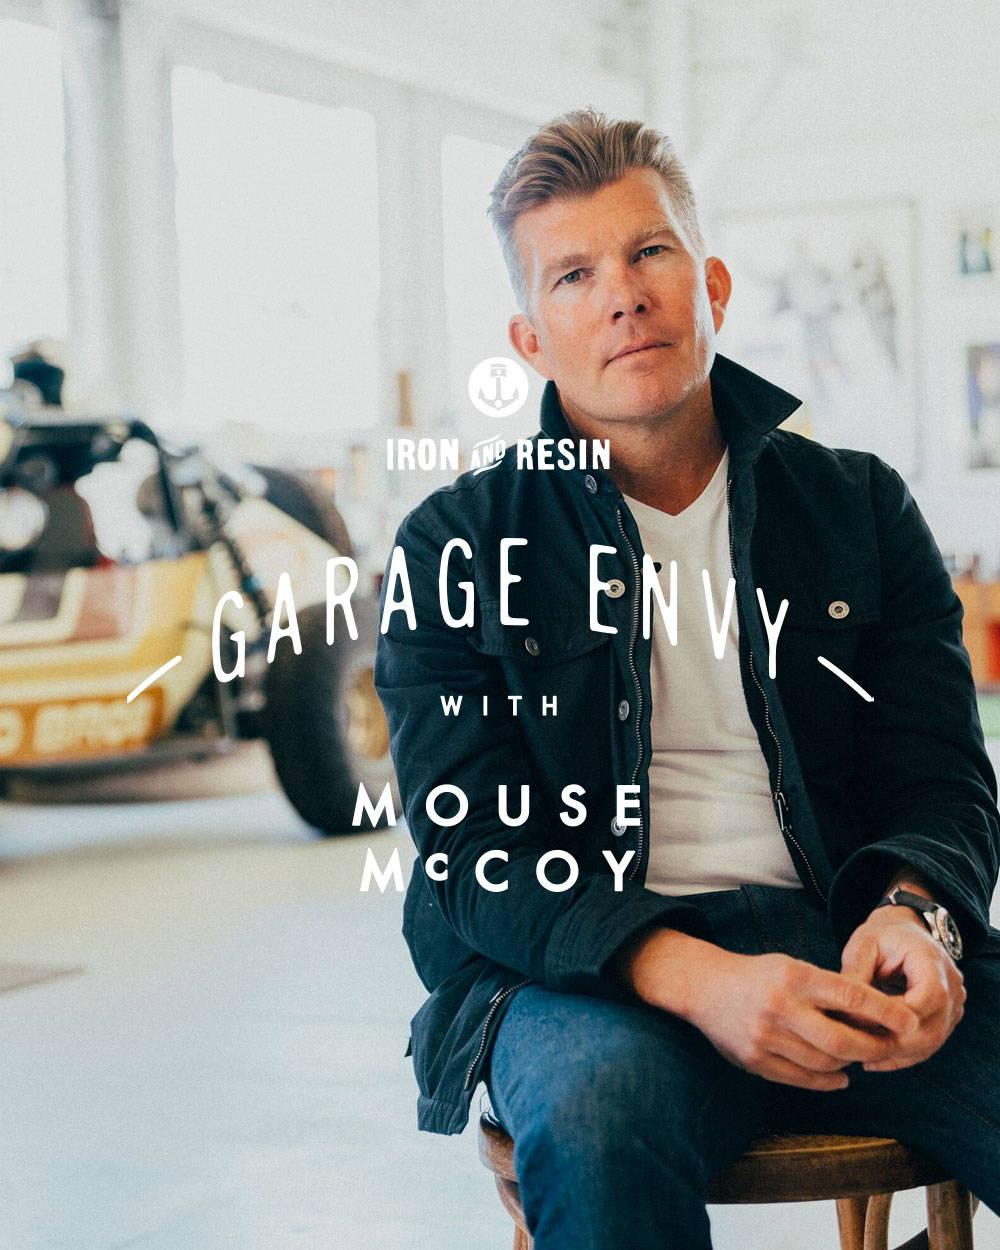 Garage Envy with Mouse McCoy – Iron and Resin